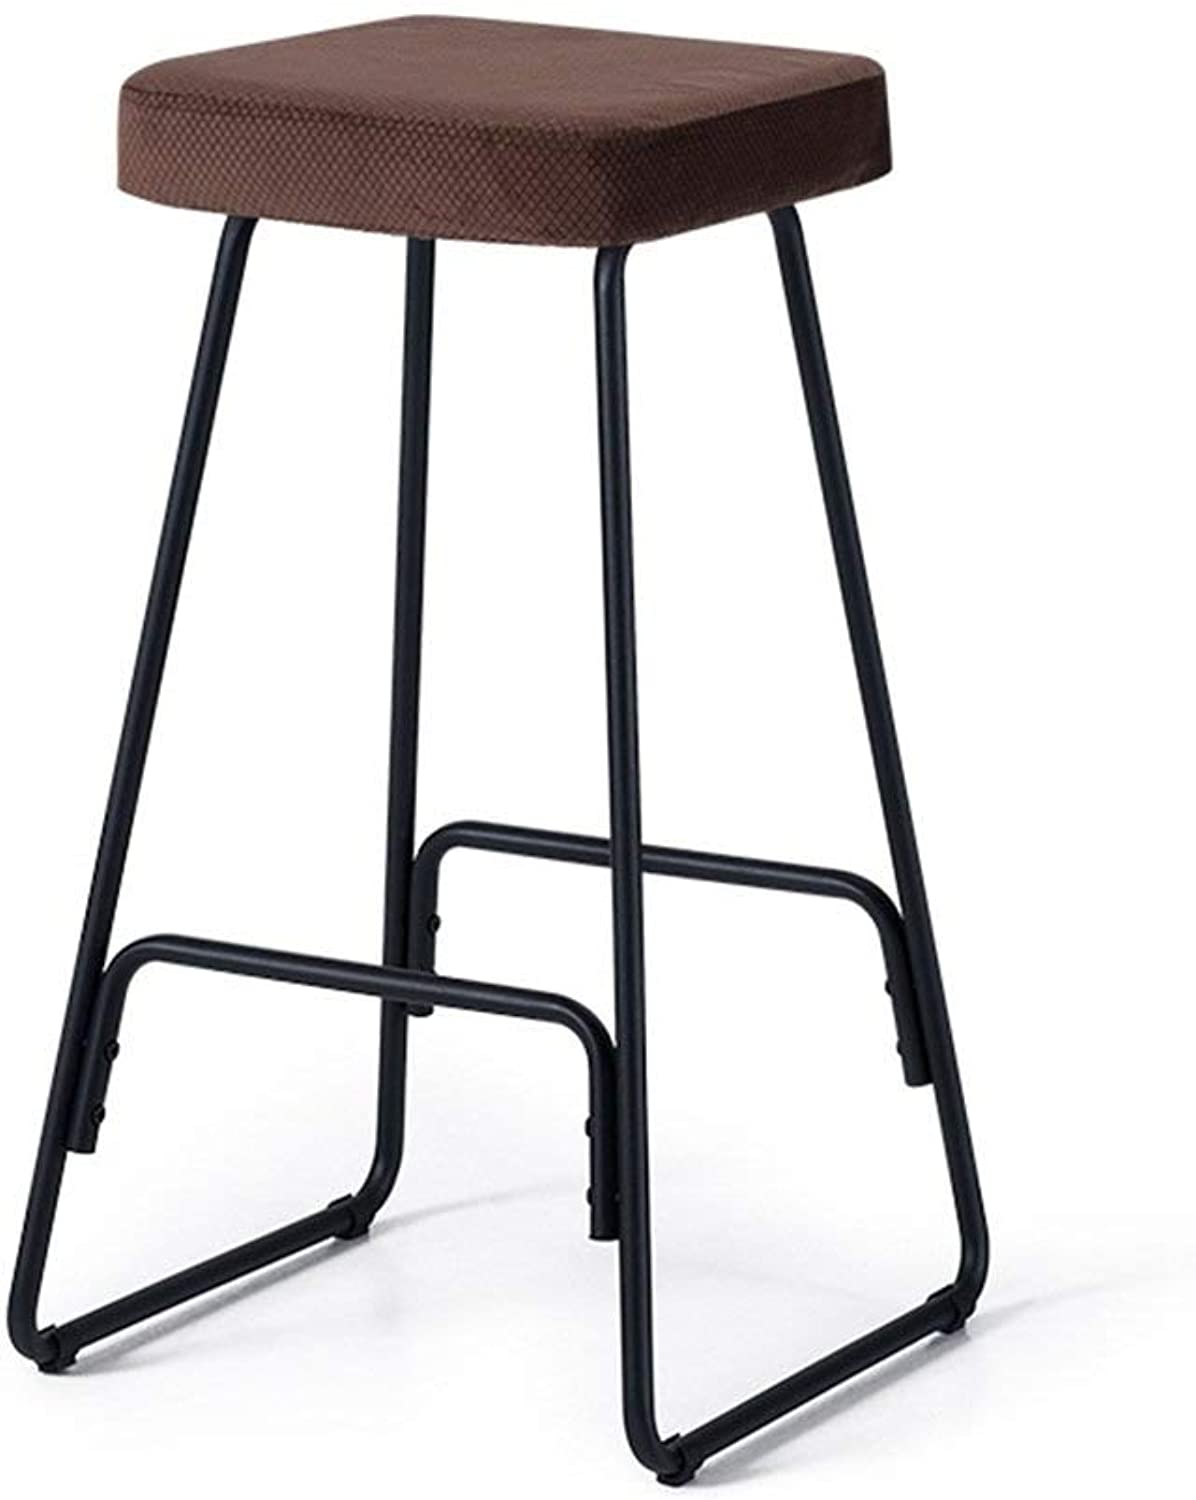 FH Bar Stool Set of 2, Creative Wrought Iron Bar Stool Modern Minimalist Bar Chair Solid Wood High Stool Retro Stool Bar Stool (color   Brown, Size   1 Pieces)